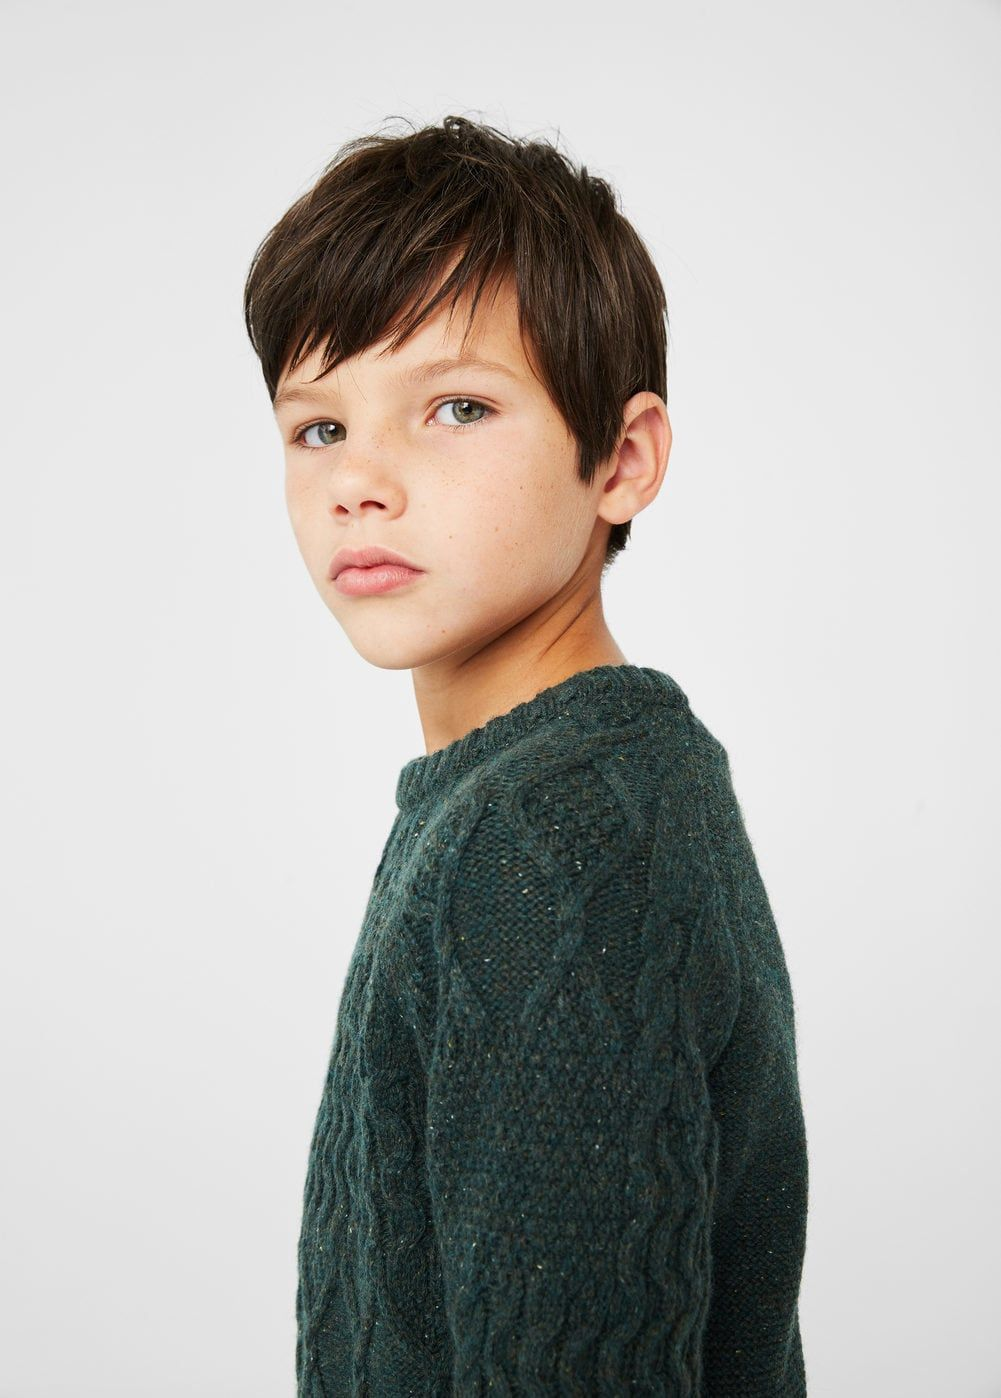 Hairstyle for teenager boy bicolor wool sweater  kids usa and boy hair